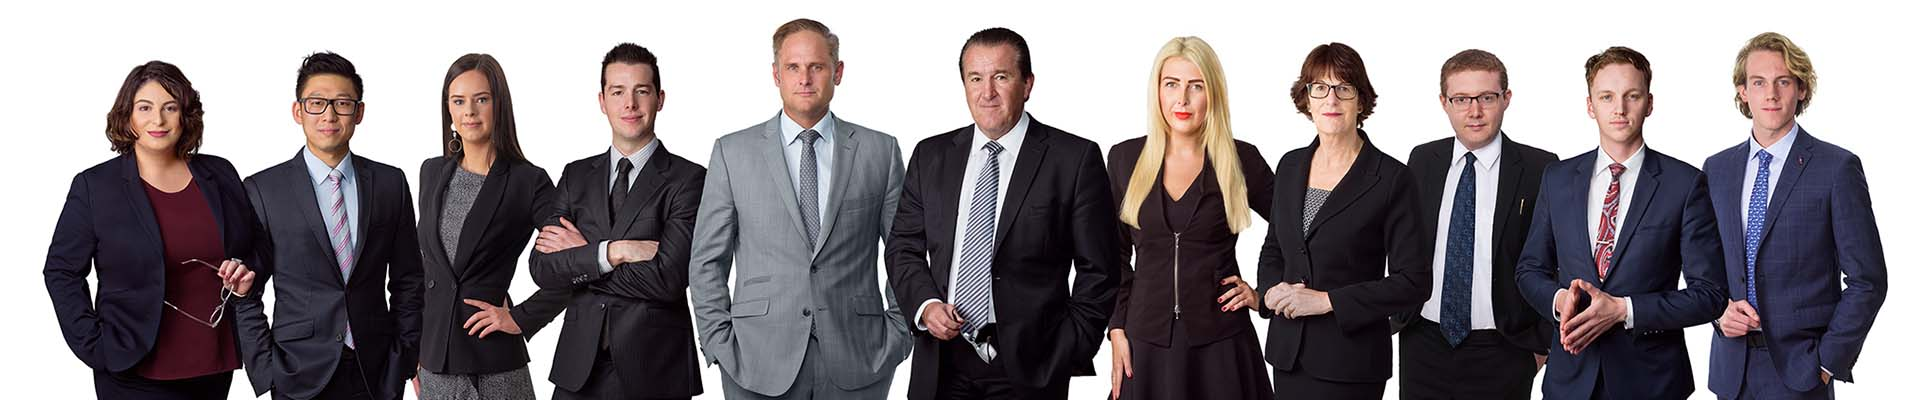 Dribbin and Brown Criminal Lawyers Melbourne Team 2021